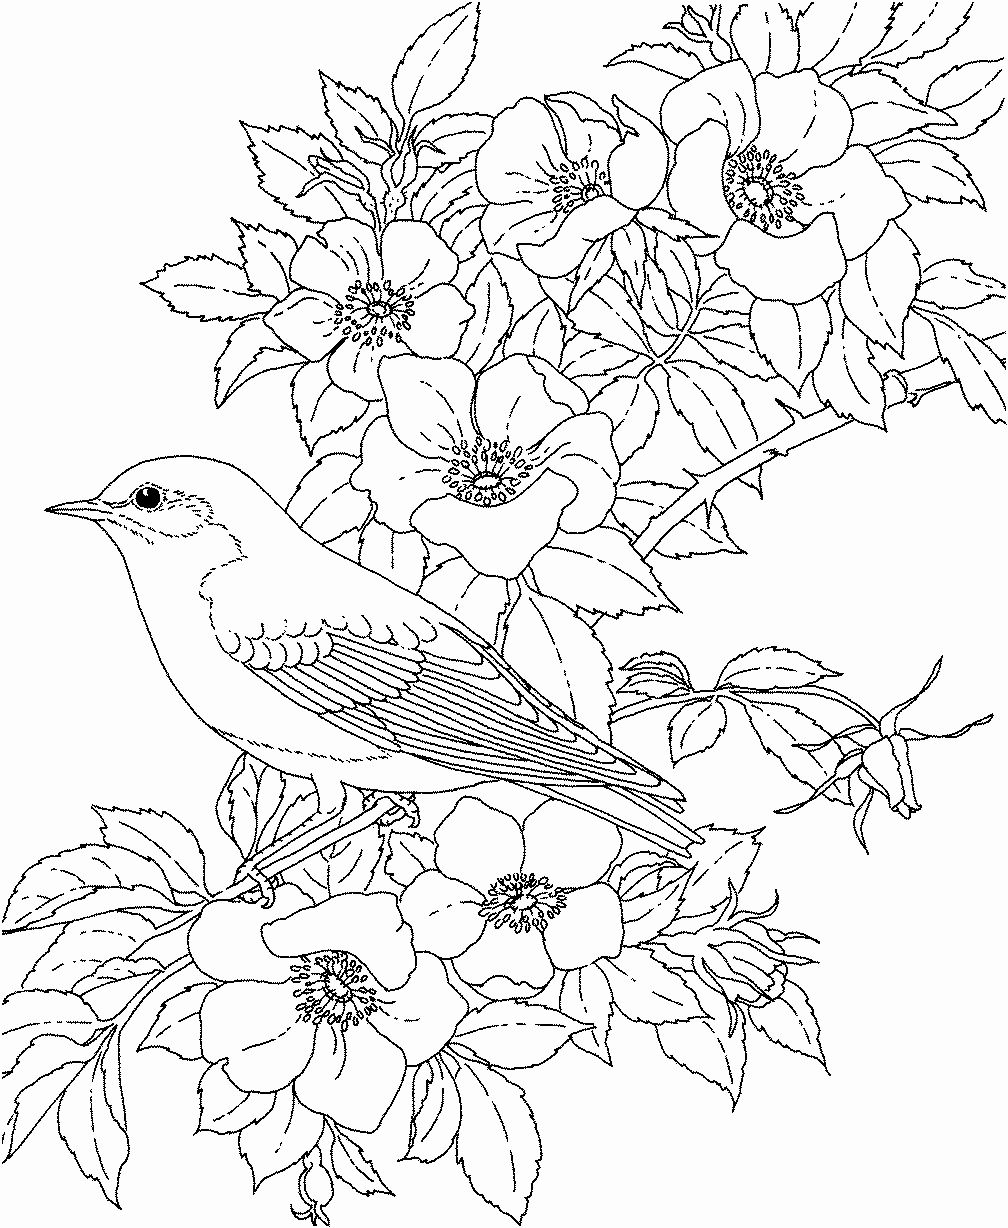 Rose Coloring Pages To Print Elegant Free Printable Coloring Page New York State Bird And Bird Coloring Pages Animal Coloring Pages Flower Coloring Pages